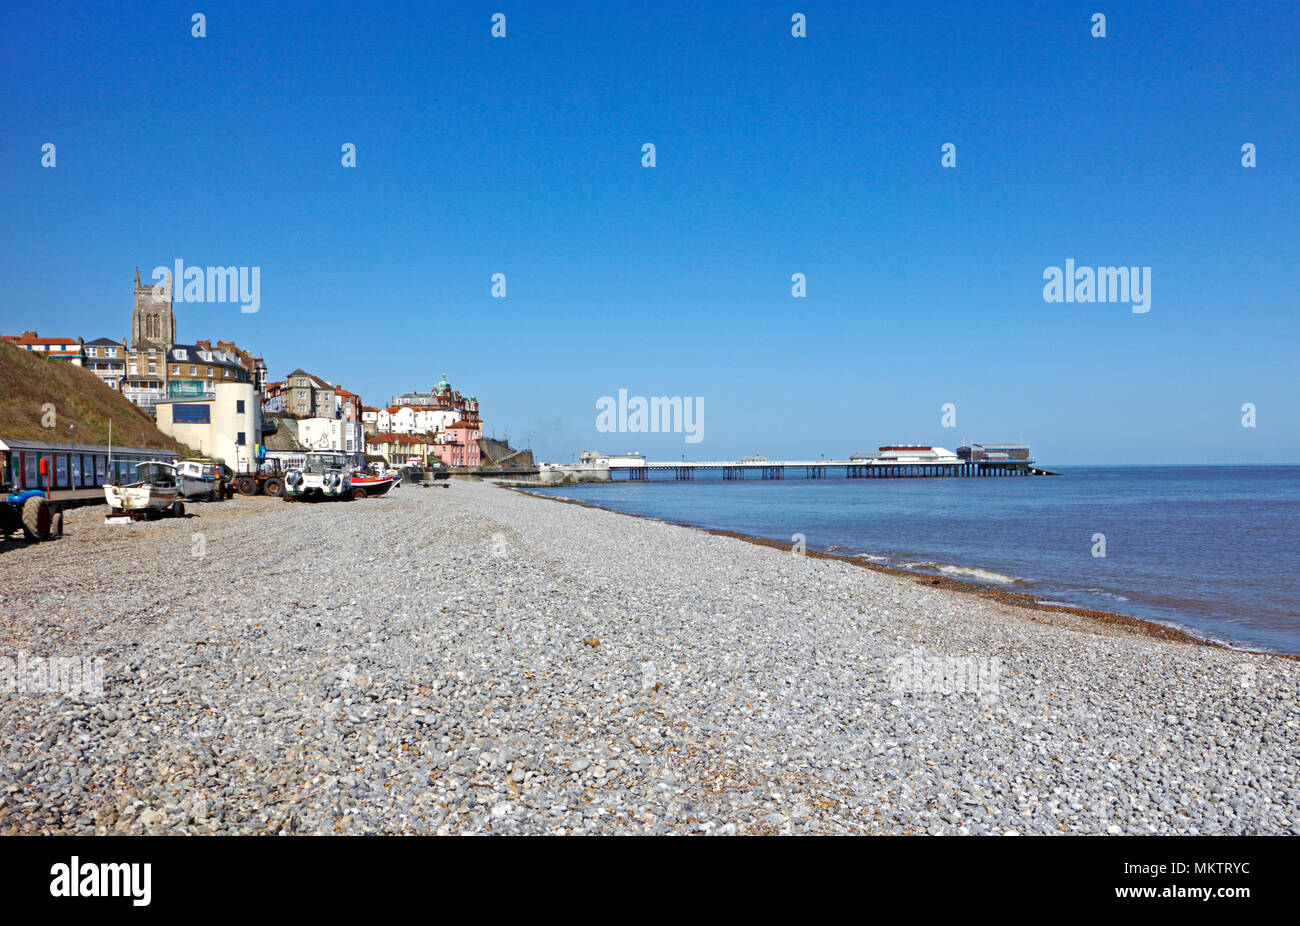 A View From The East Beach Looking Towards Seaside Town Of Cromer Norfolk England United Kingdom Europe